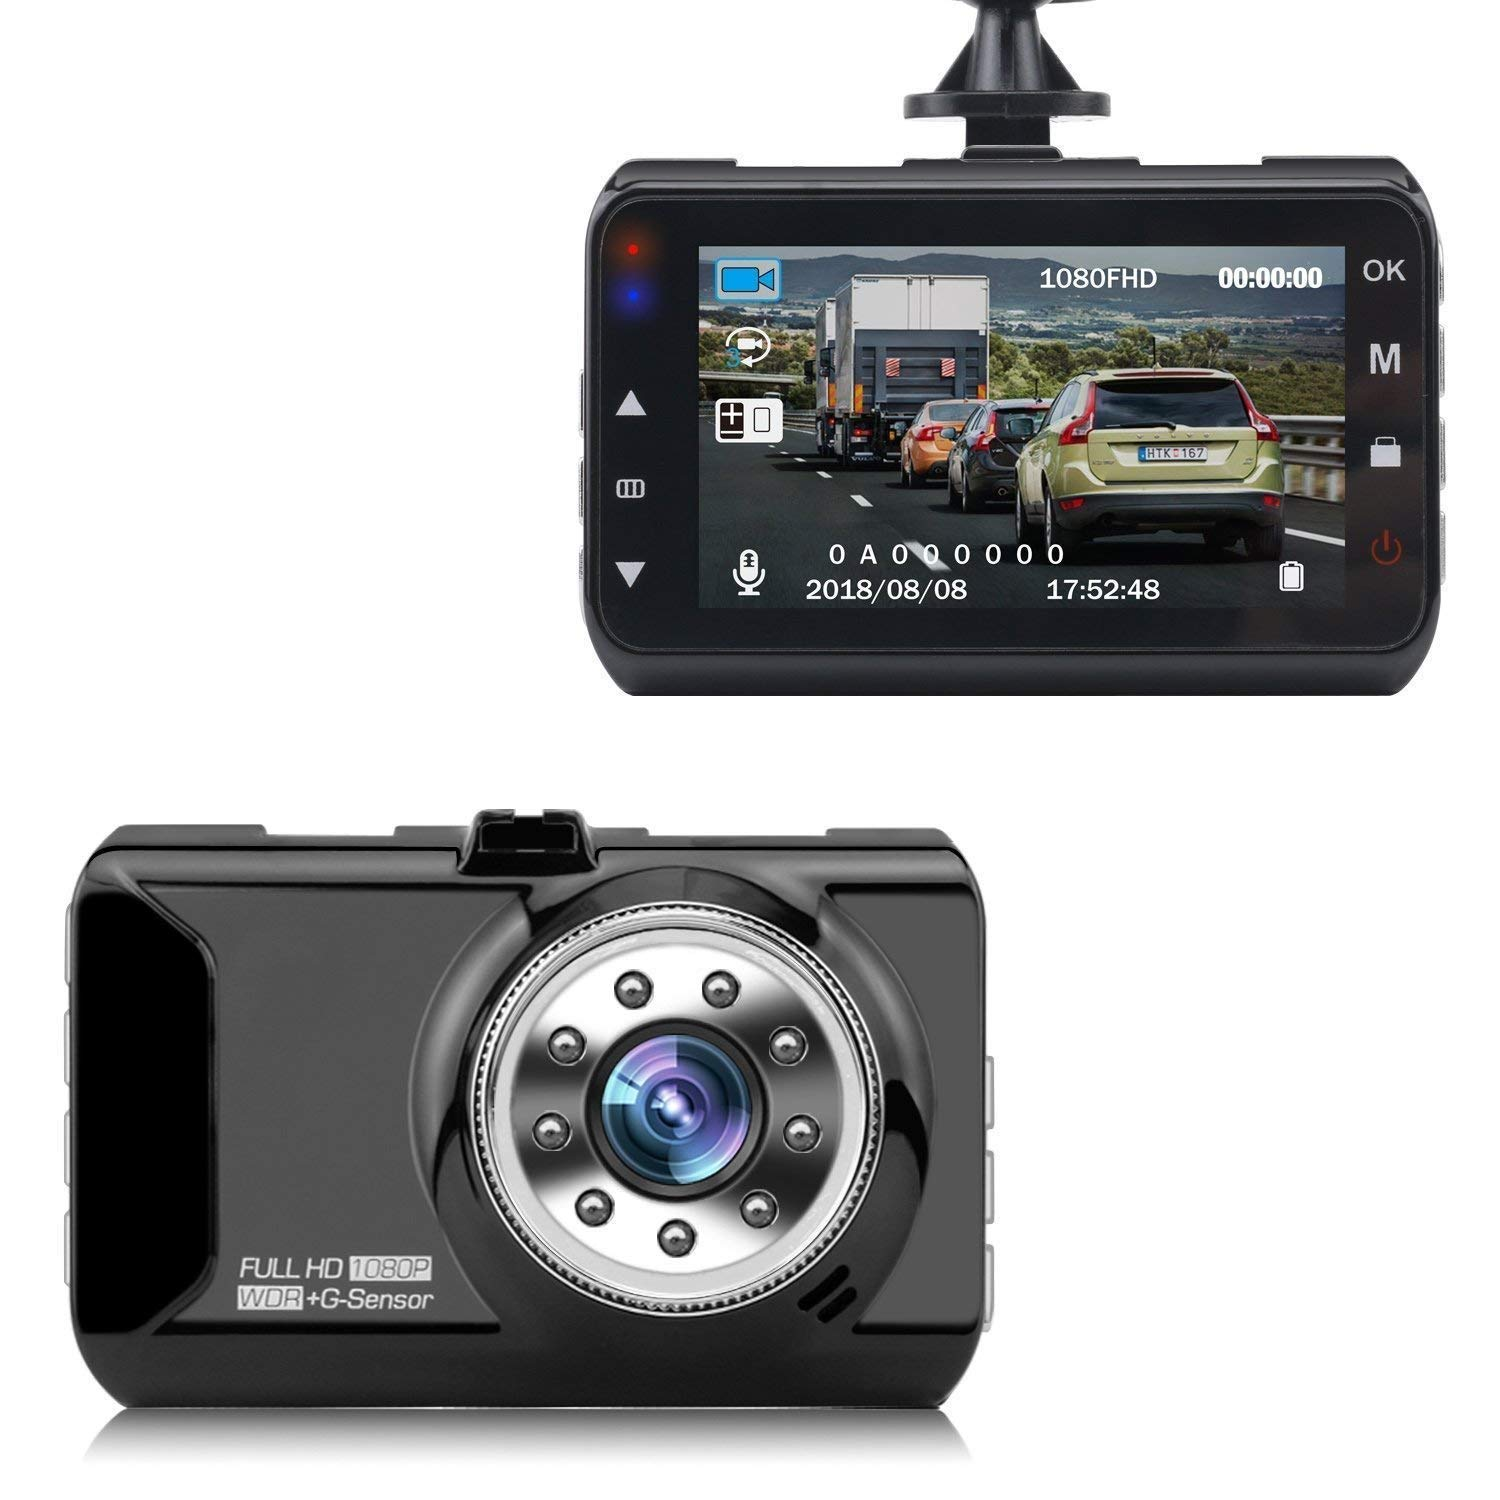 "Dash Cam, coolsun Dashboard Camera Recorder 3.0""LCD FHD 1080P, Car Cam Vehicle DVR Built-in Night Vision, WDR, G-Sensor, Loop Recording."